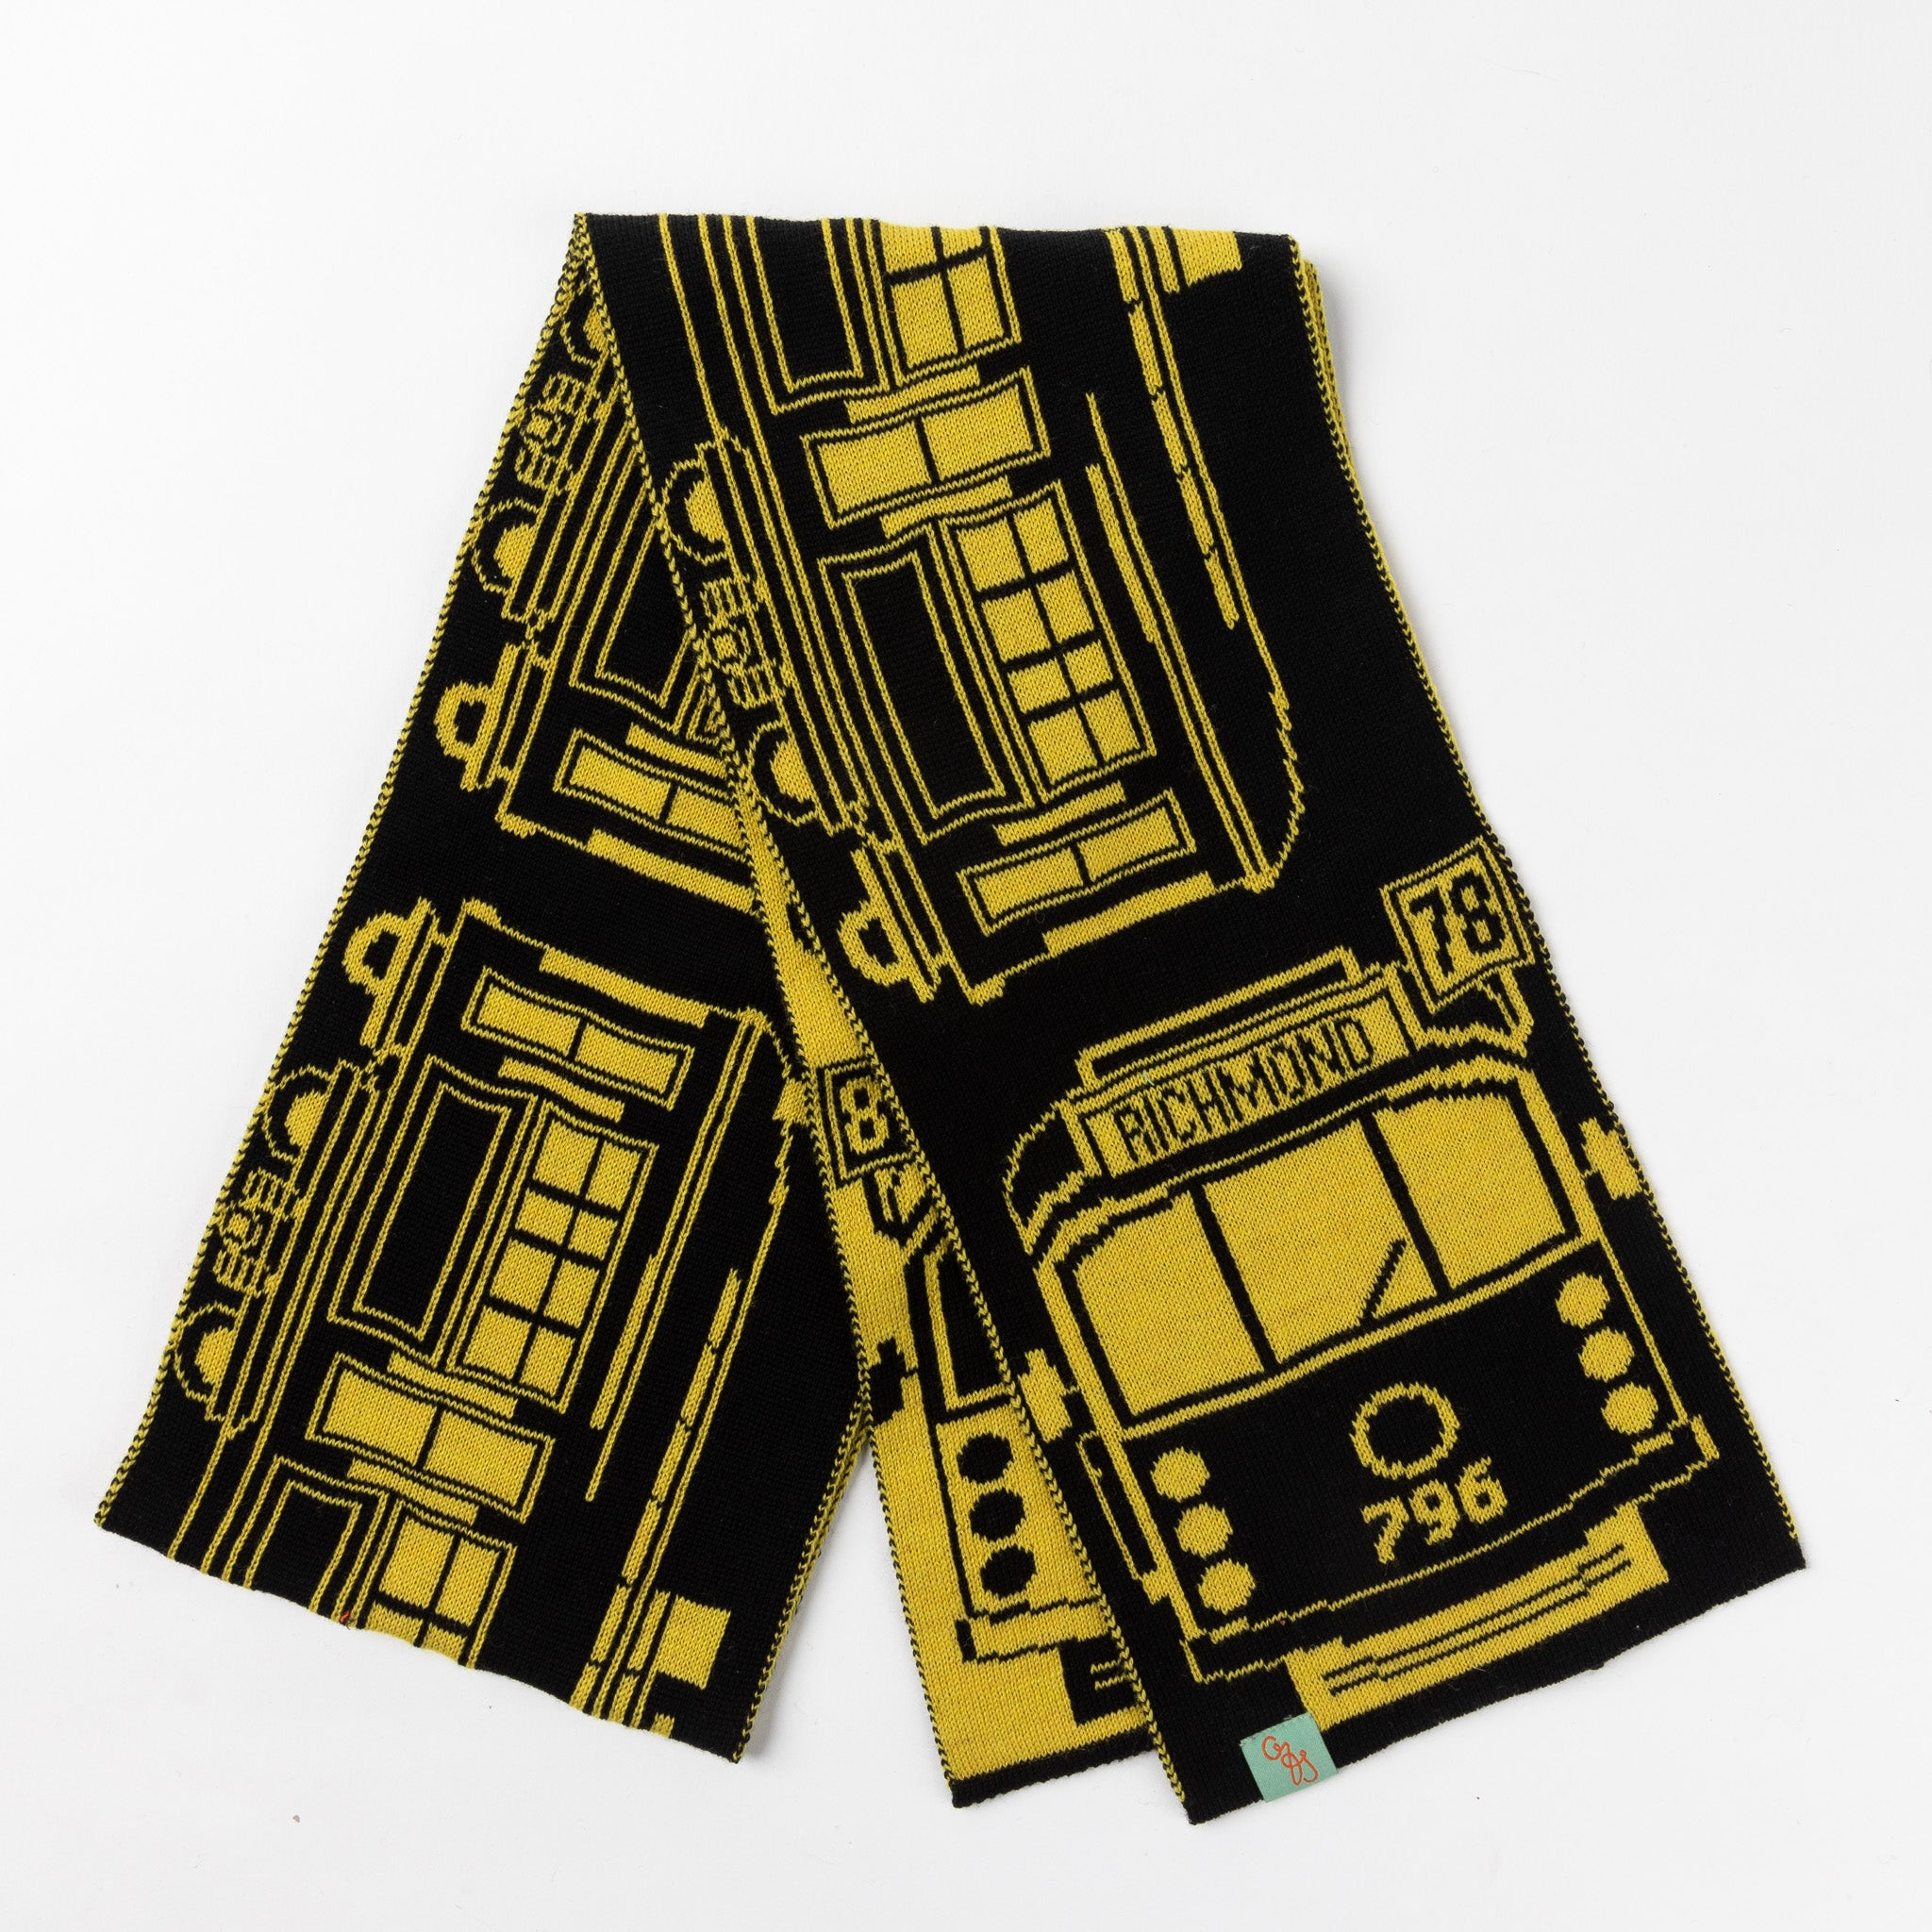 Richmond Tram Scarf - Go Tiges!